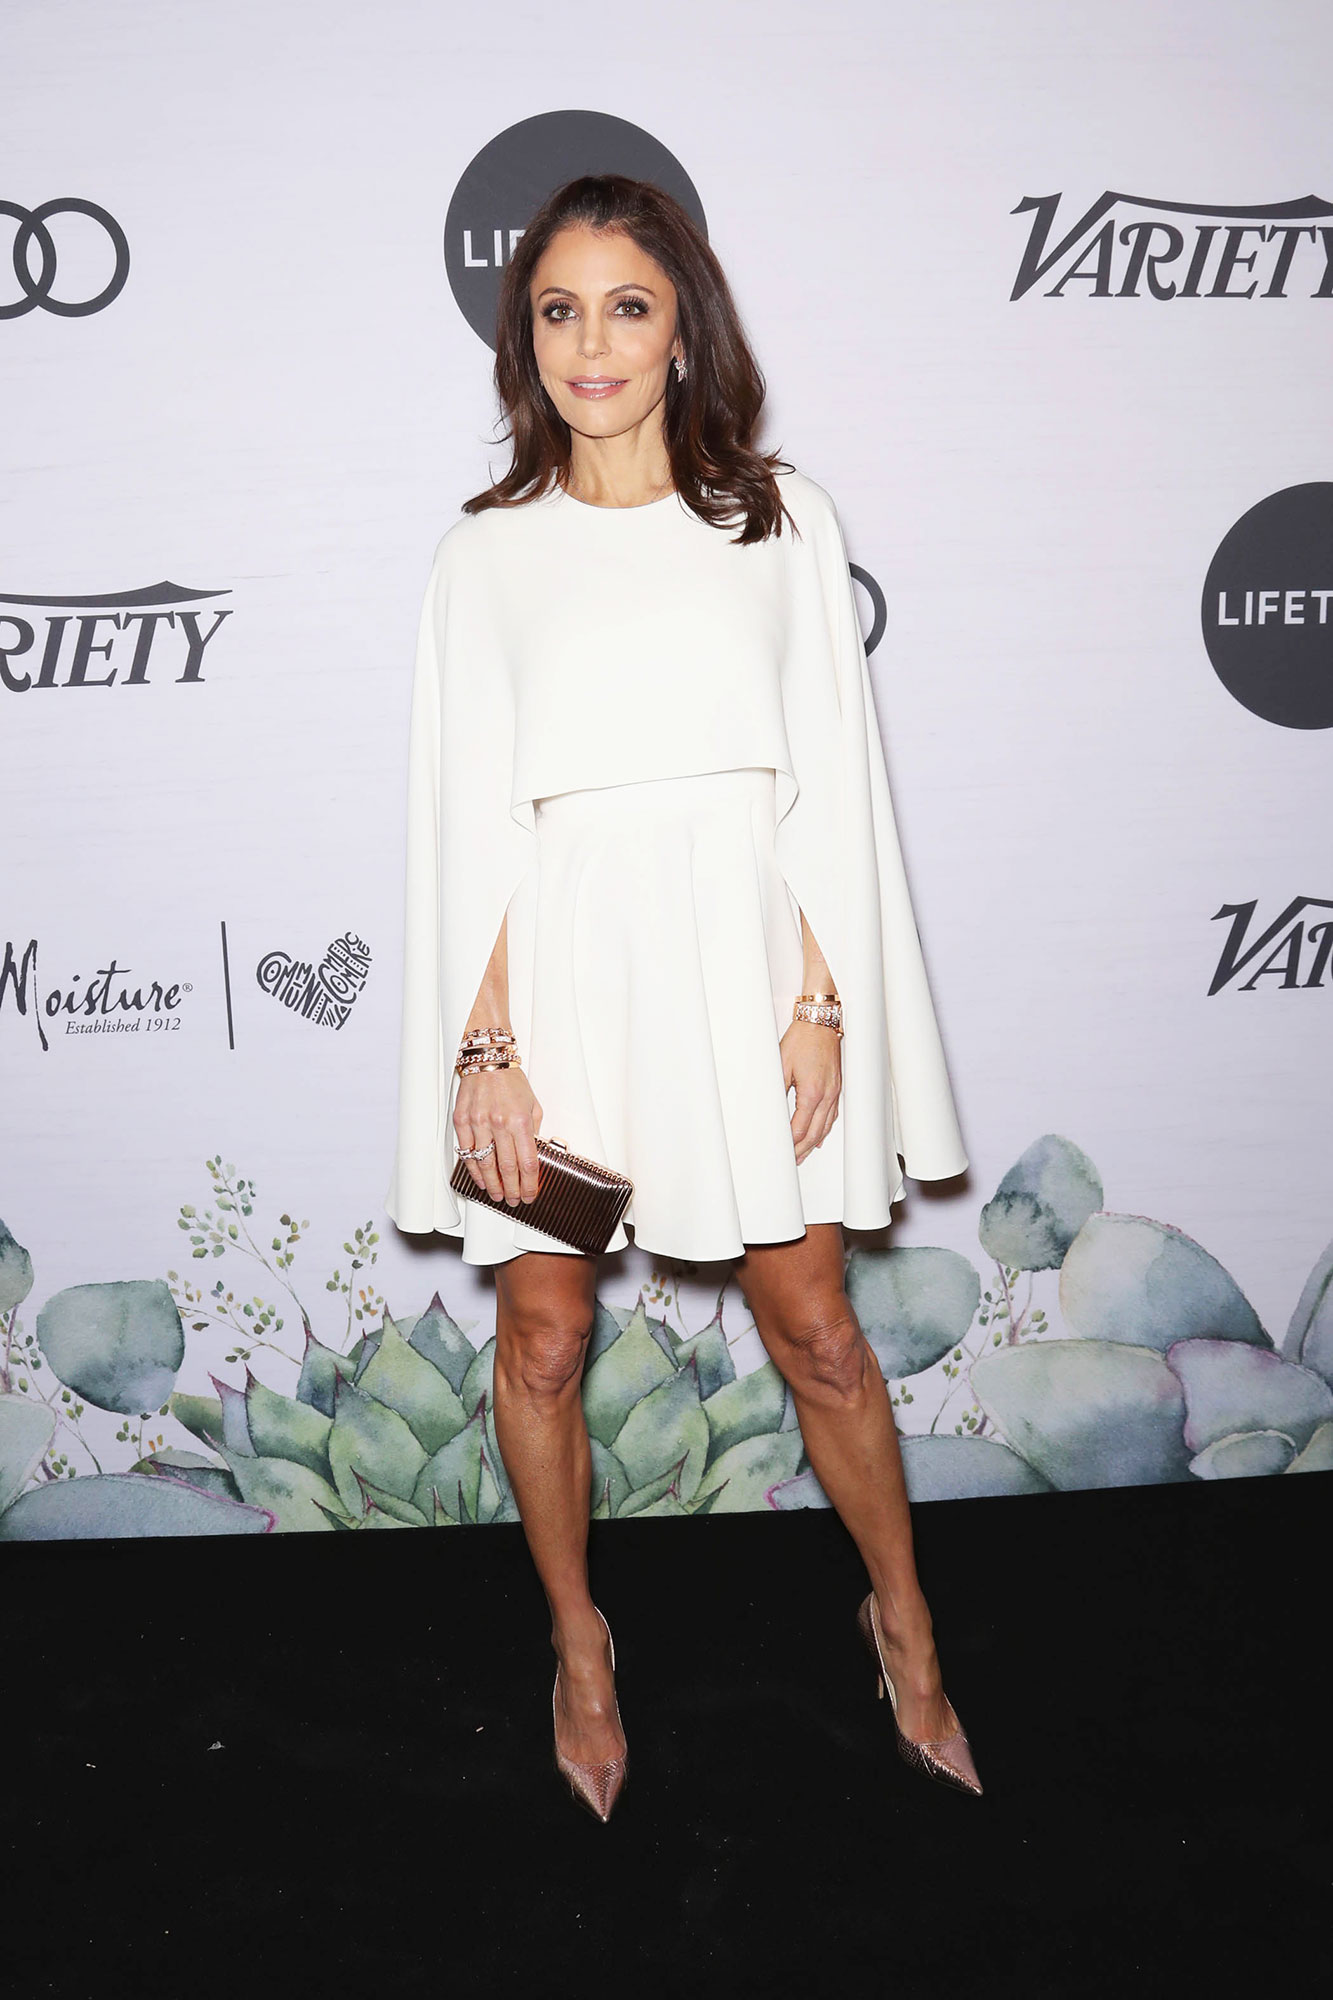 Bethenny Frankel Variety's Power of Women - The reality star wore a white minidress with cape sleeves and a pleated skirt.